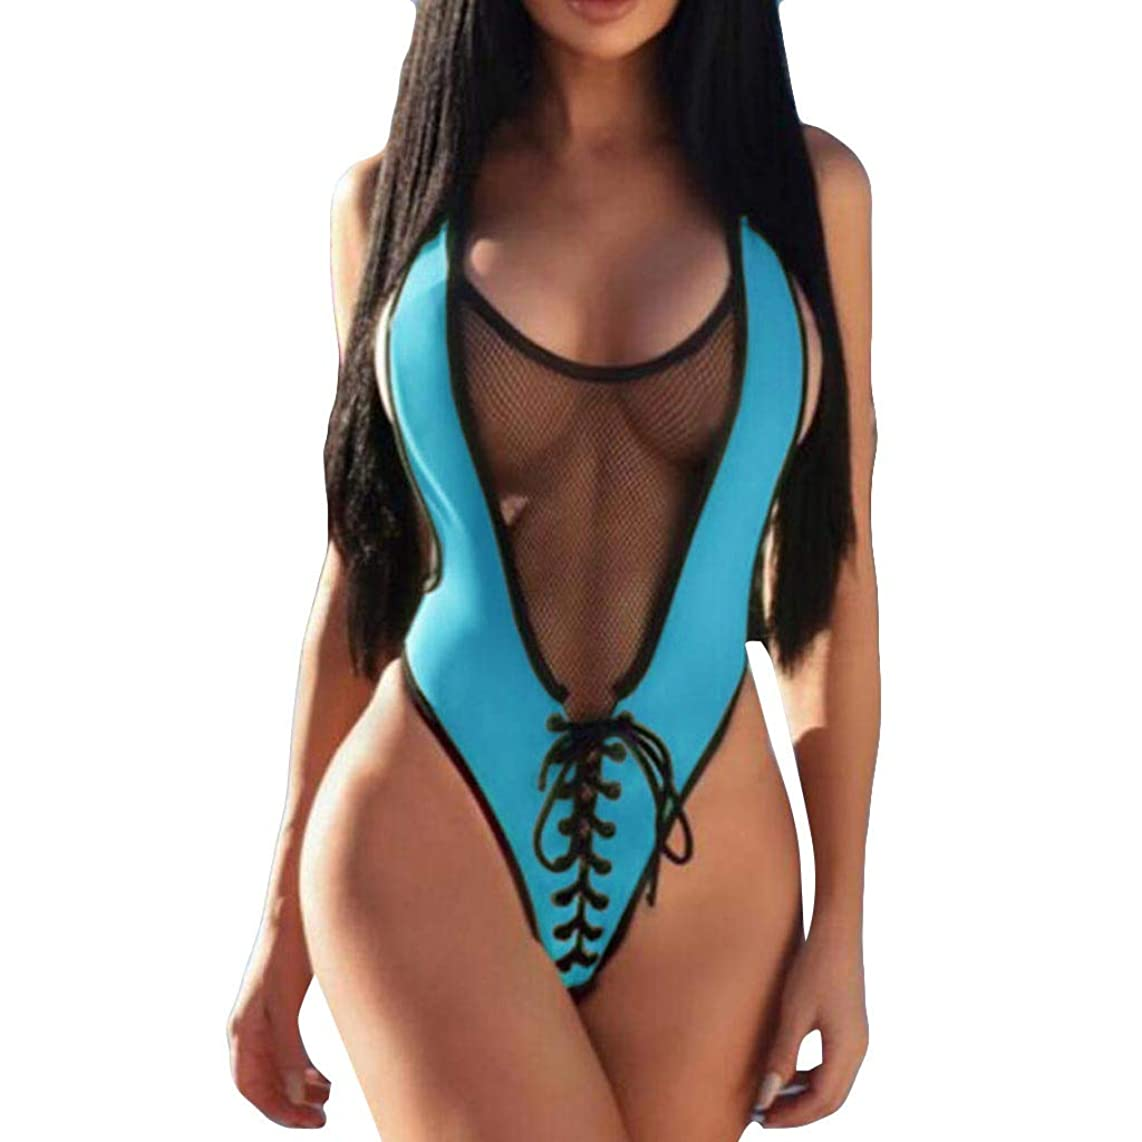 Iuhan  One-Pieces Lace-up Monokinis Bathing Suit for Women, See-Through Women Jumpsuit Push-Up Padded Bra Sport Beach Bikini Sexy Swimwear